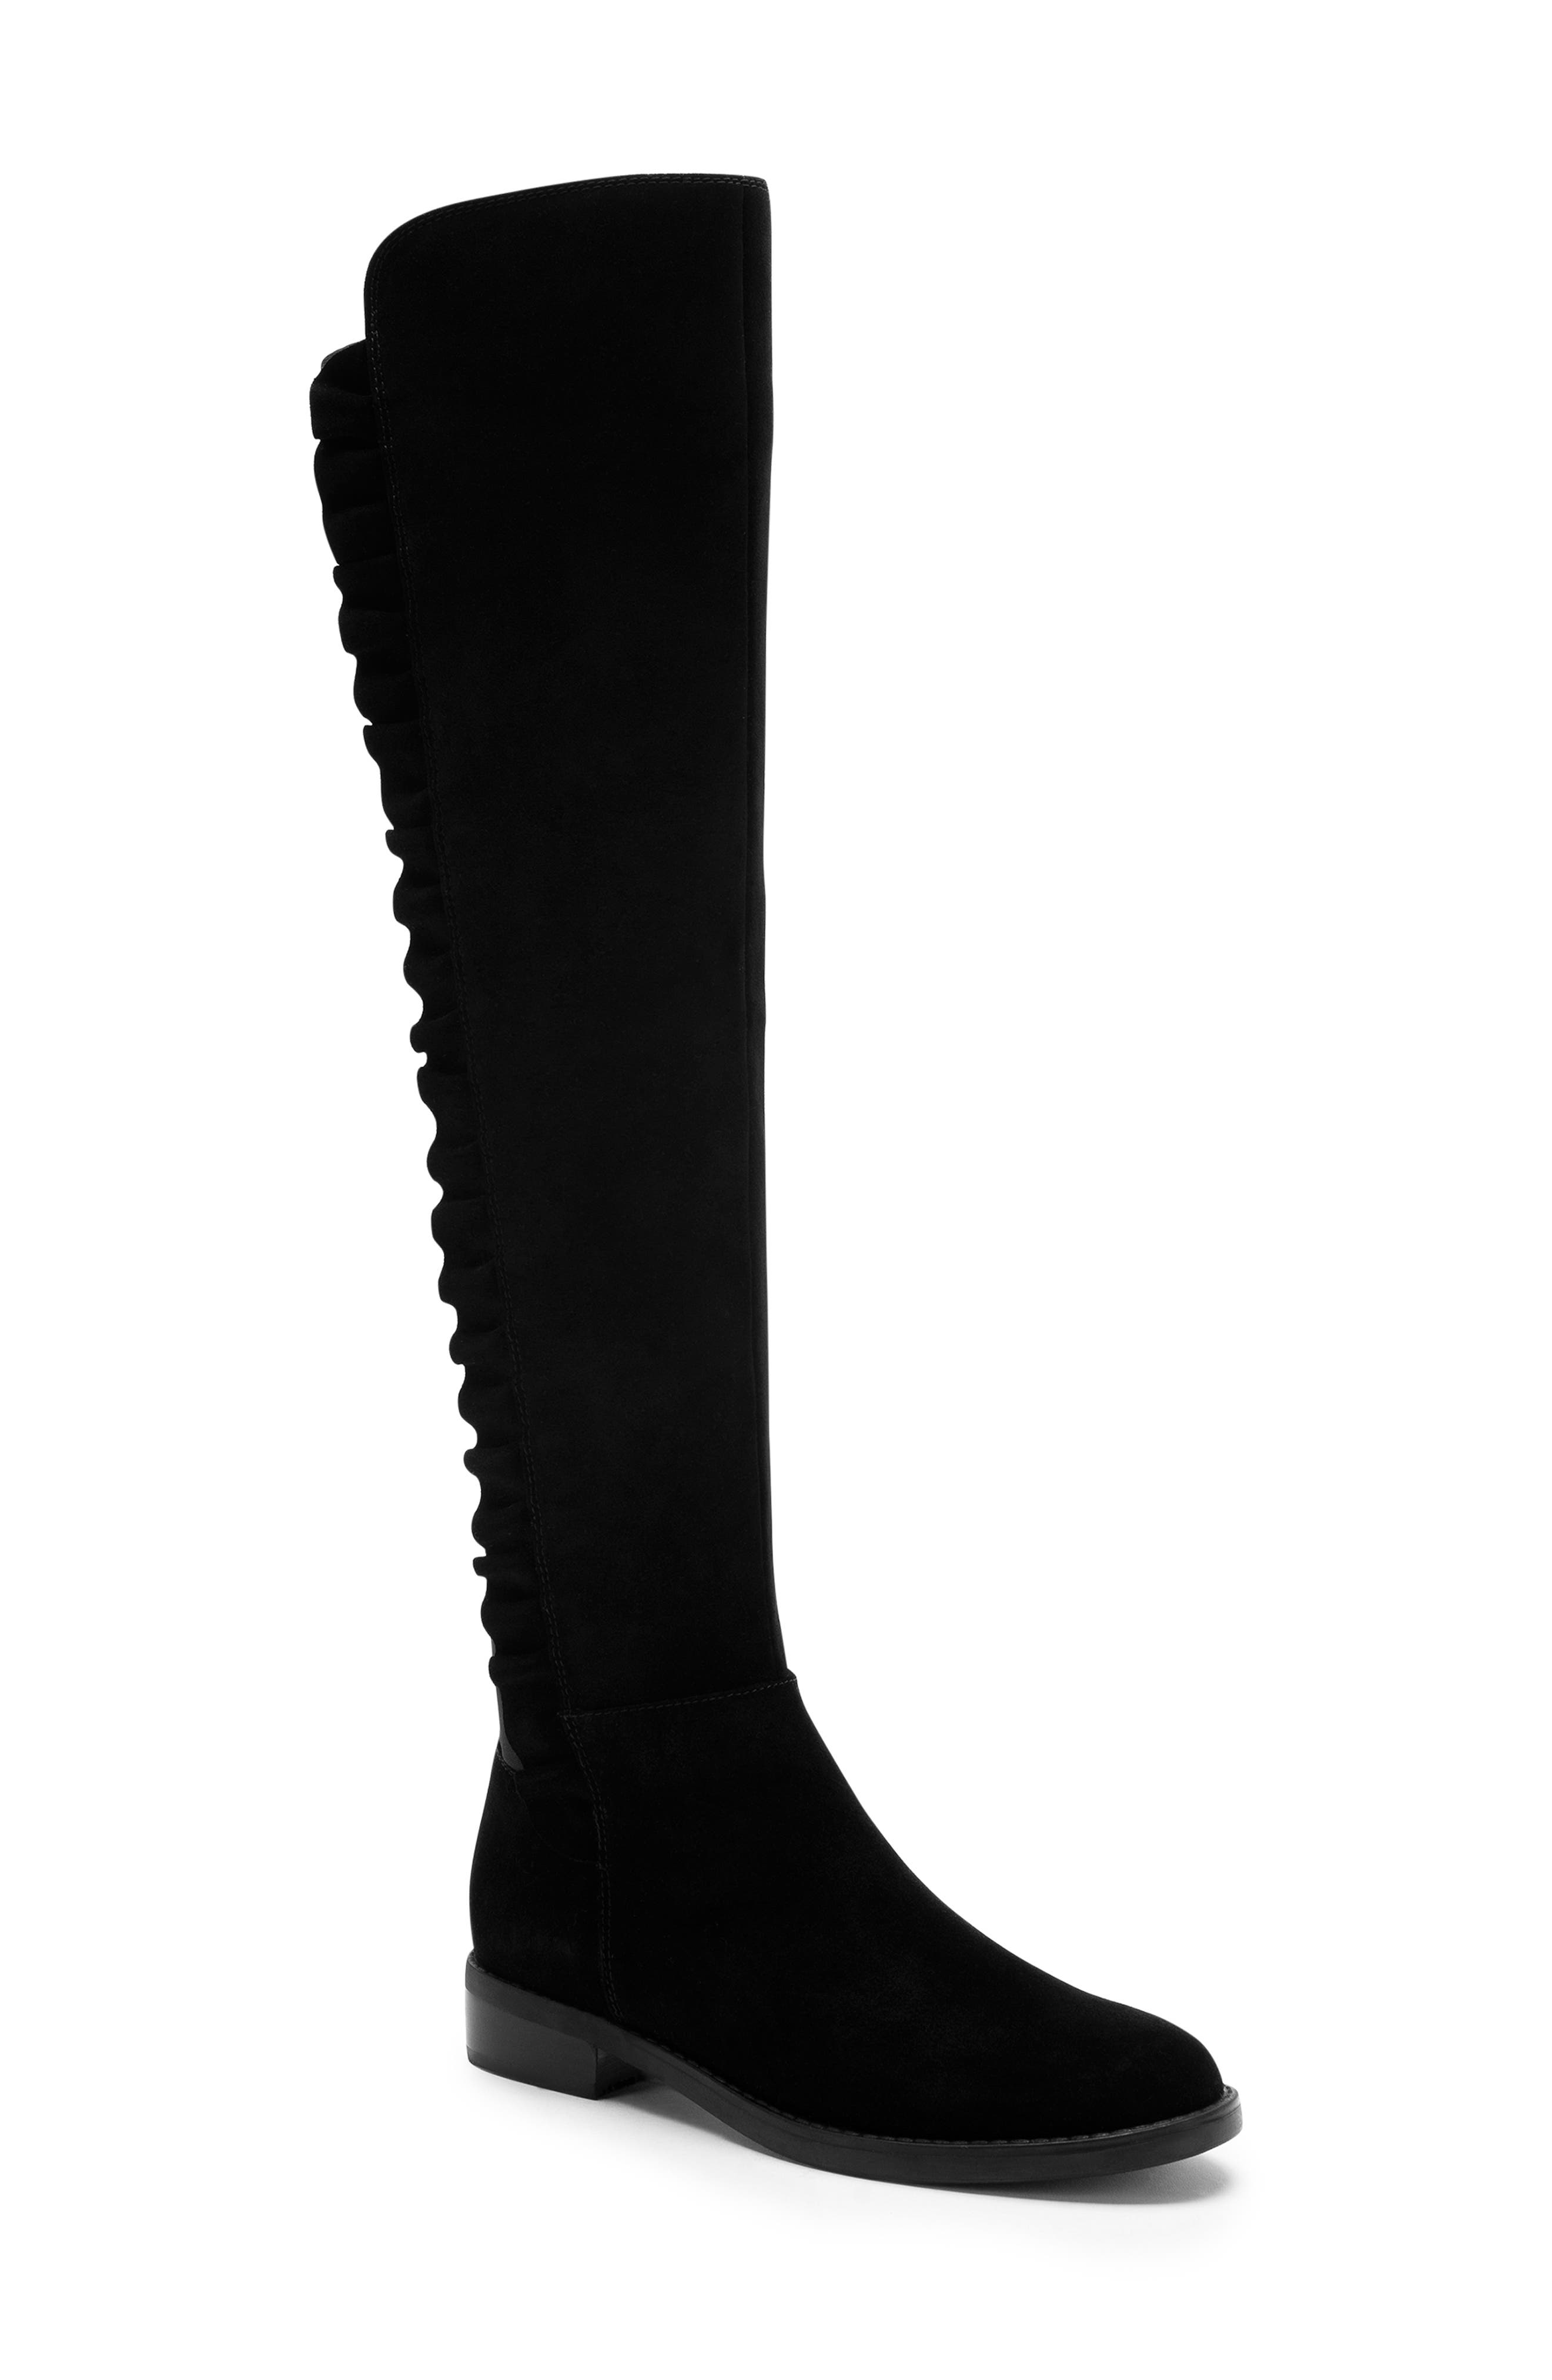 BLONDO, Ethos Over the Knee Waterproof Stretch Boot, Main thumbnail 1, color, BLACK SUEDE